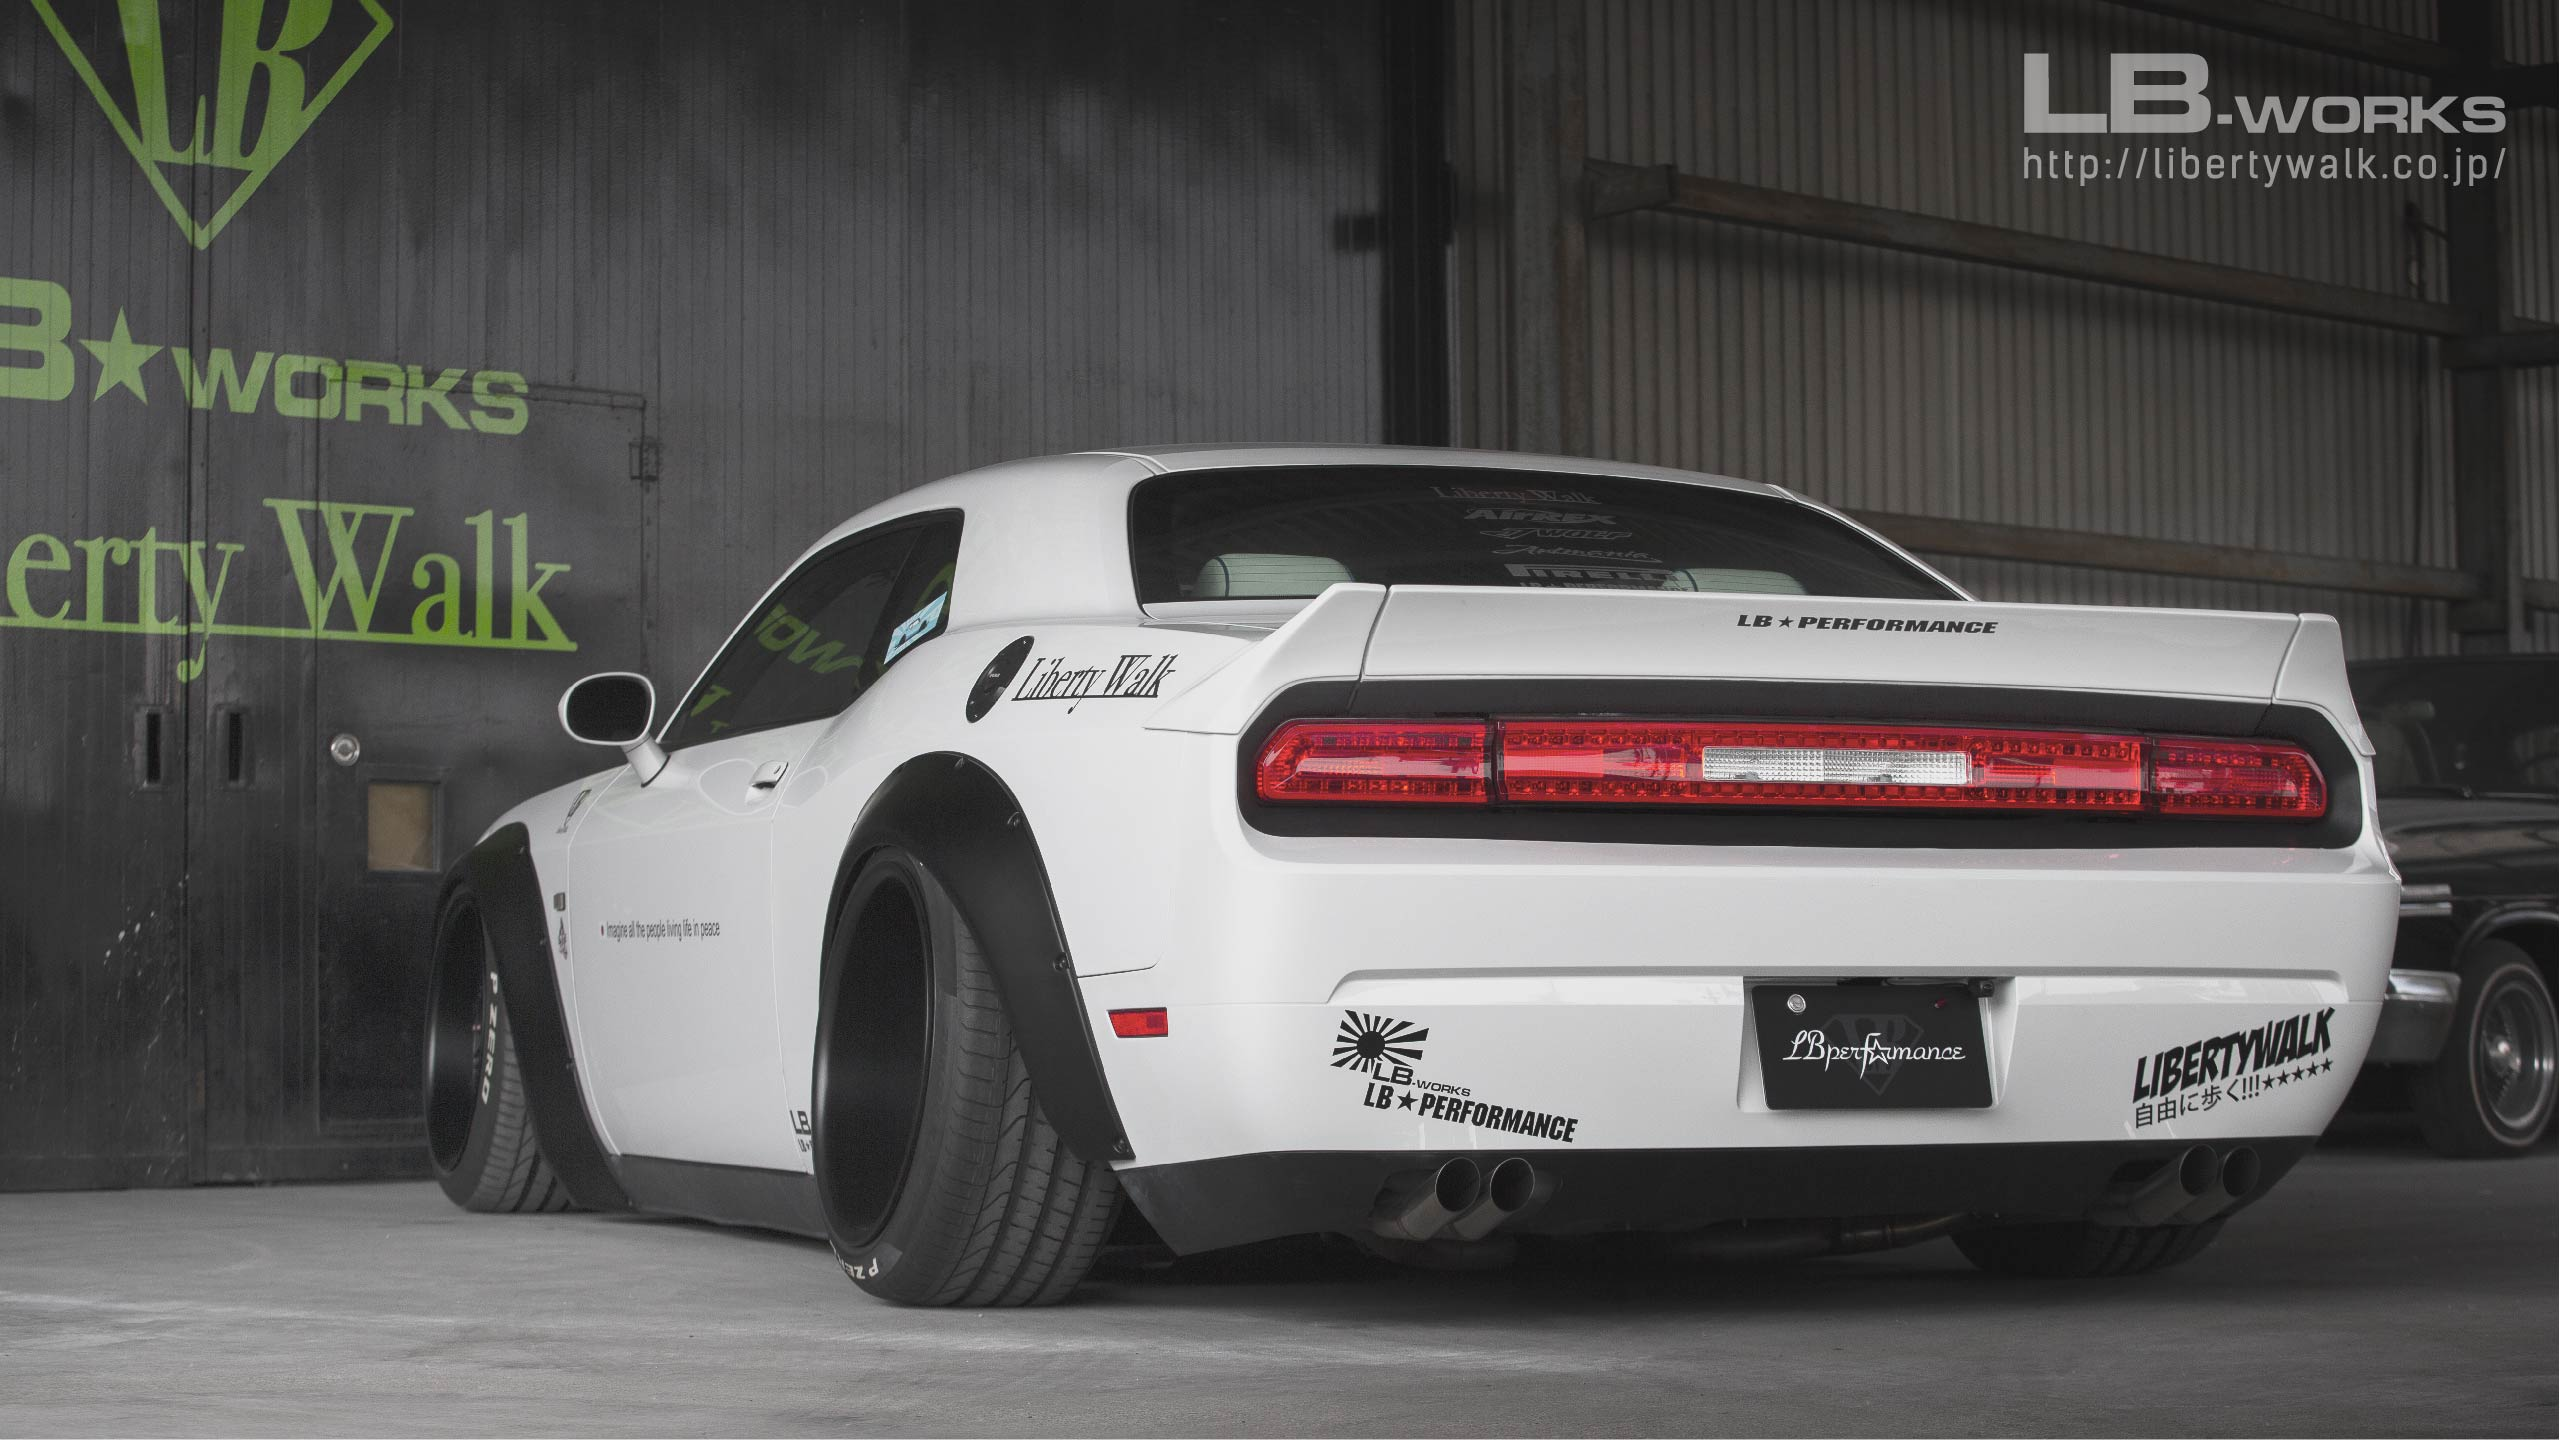 170 LB★WORKS DODGE Challenger